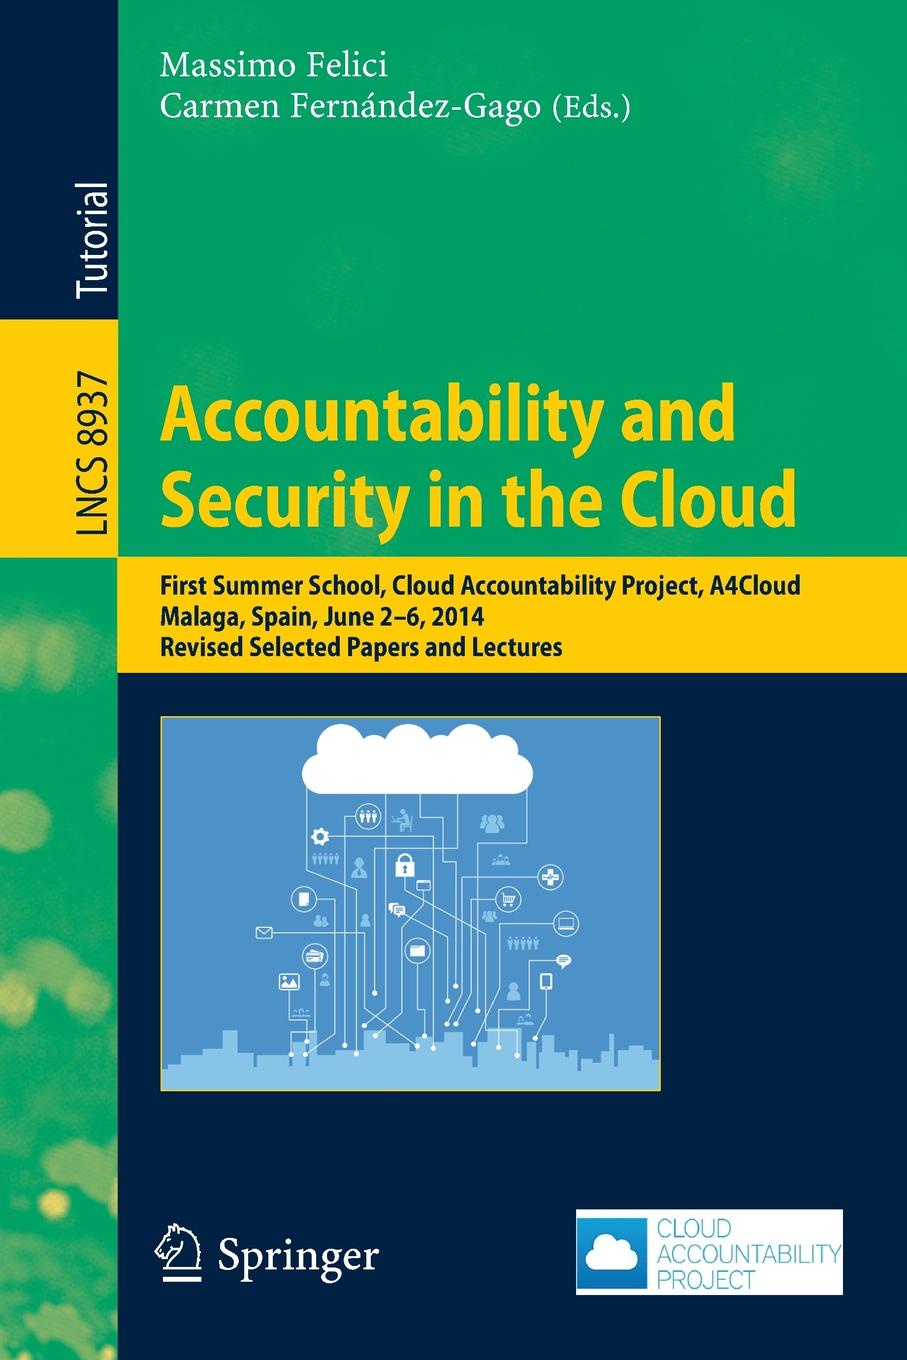 Accountability and Security in the Cloud. First Summer School, Cloud Project, A4Cloud, Malaga, Spain, June 2-6, 2014, Revised Selected Papers Lectures